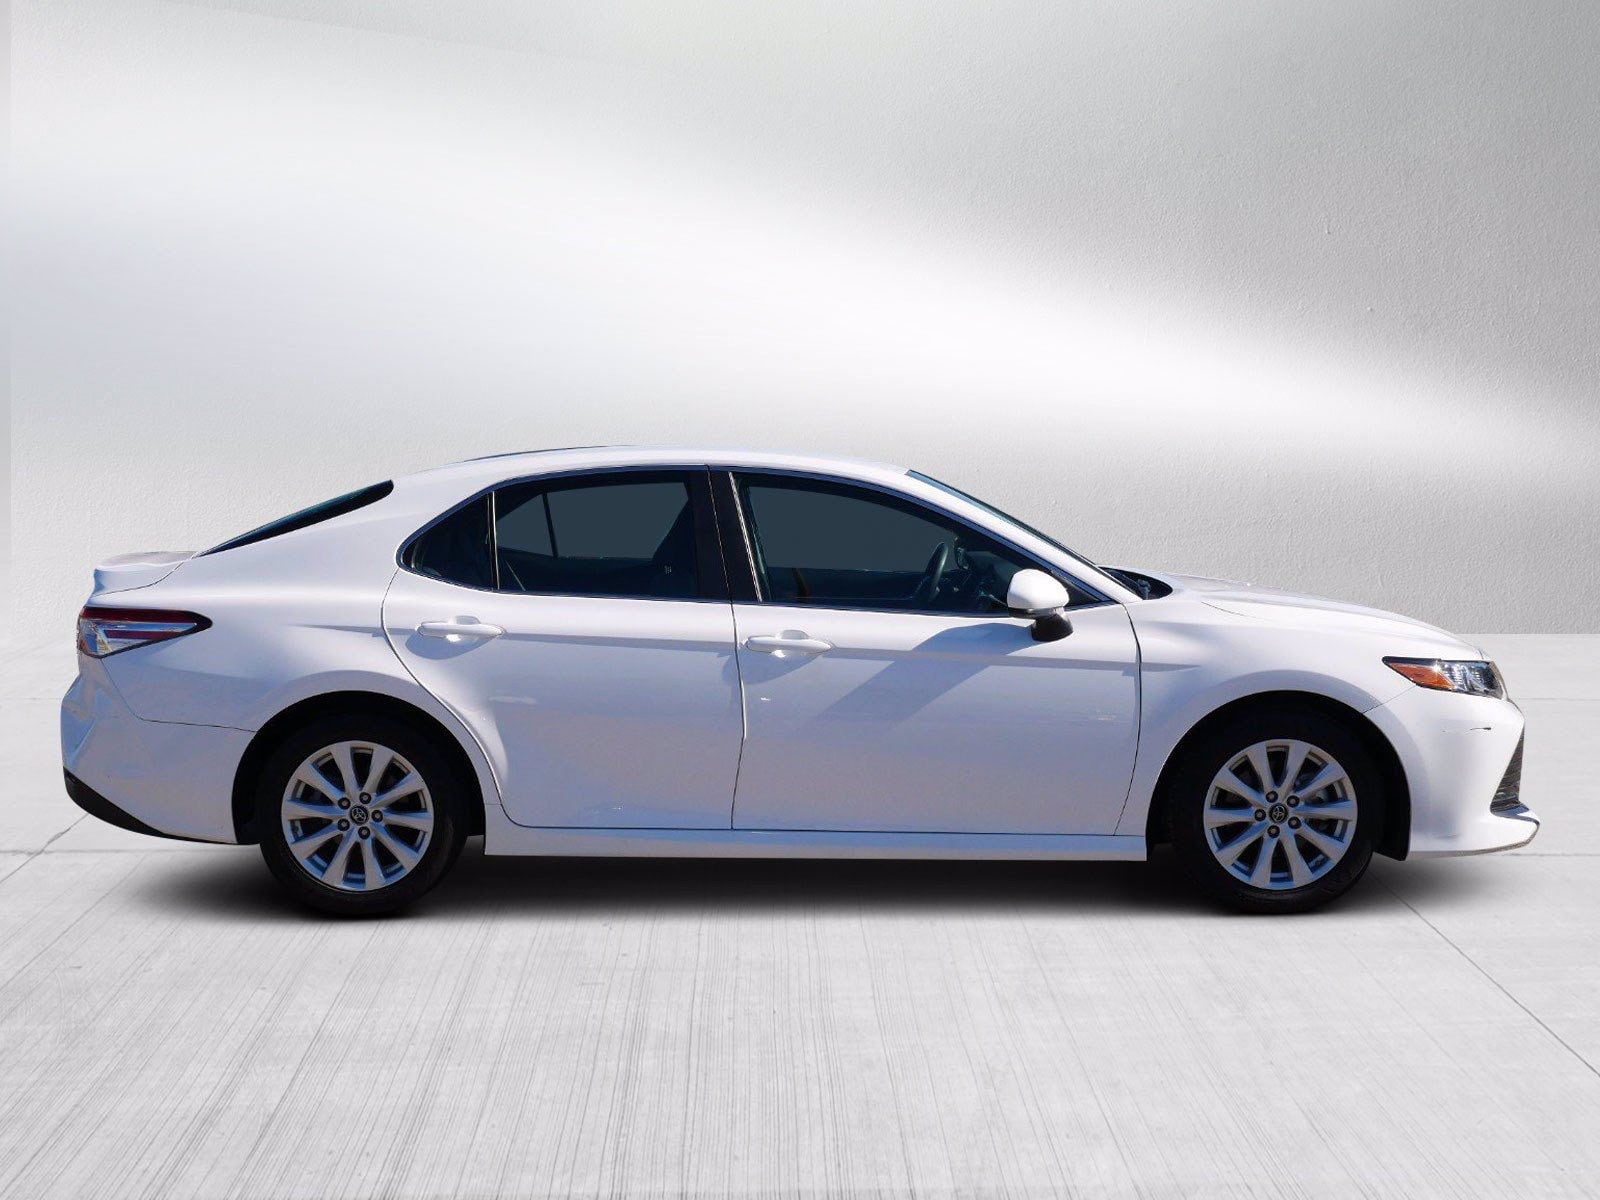 Used 2018 Toyota Camry LE with VIN 4T1B11HK4JU157201 for sale in Bloomington, Minnesota